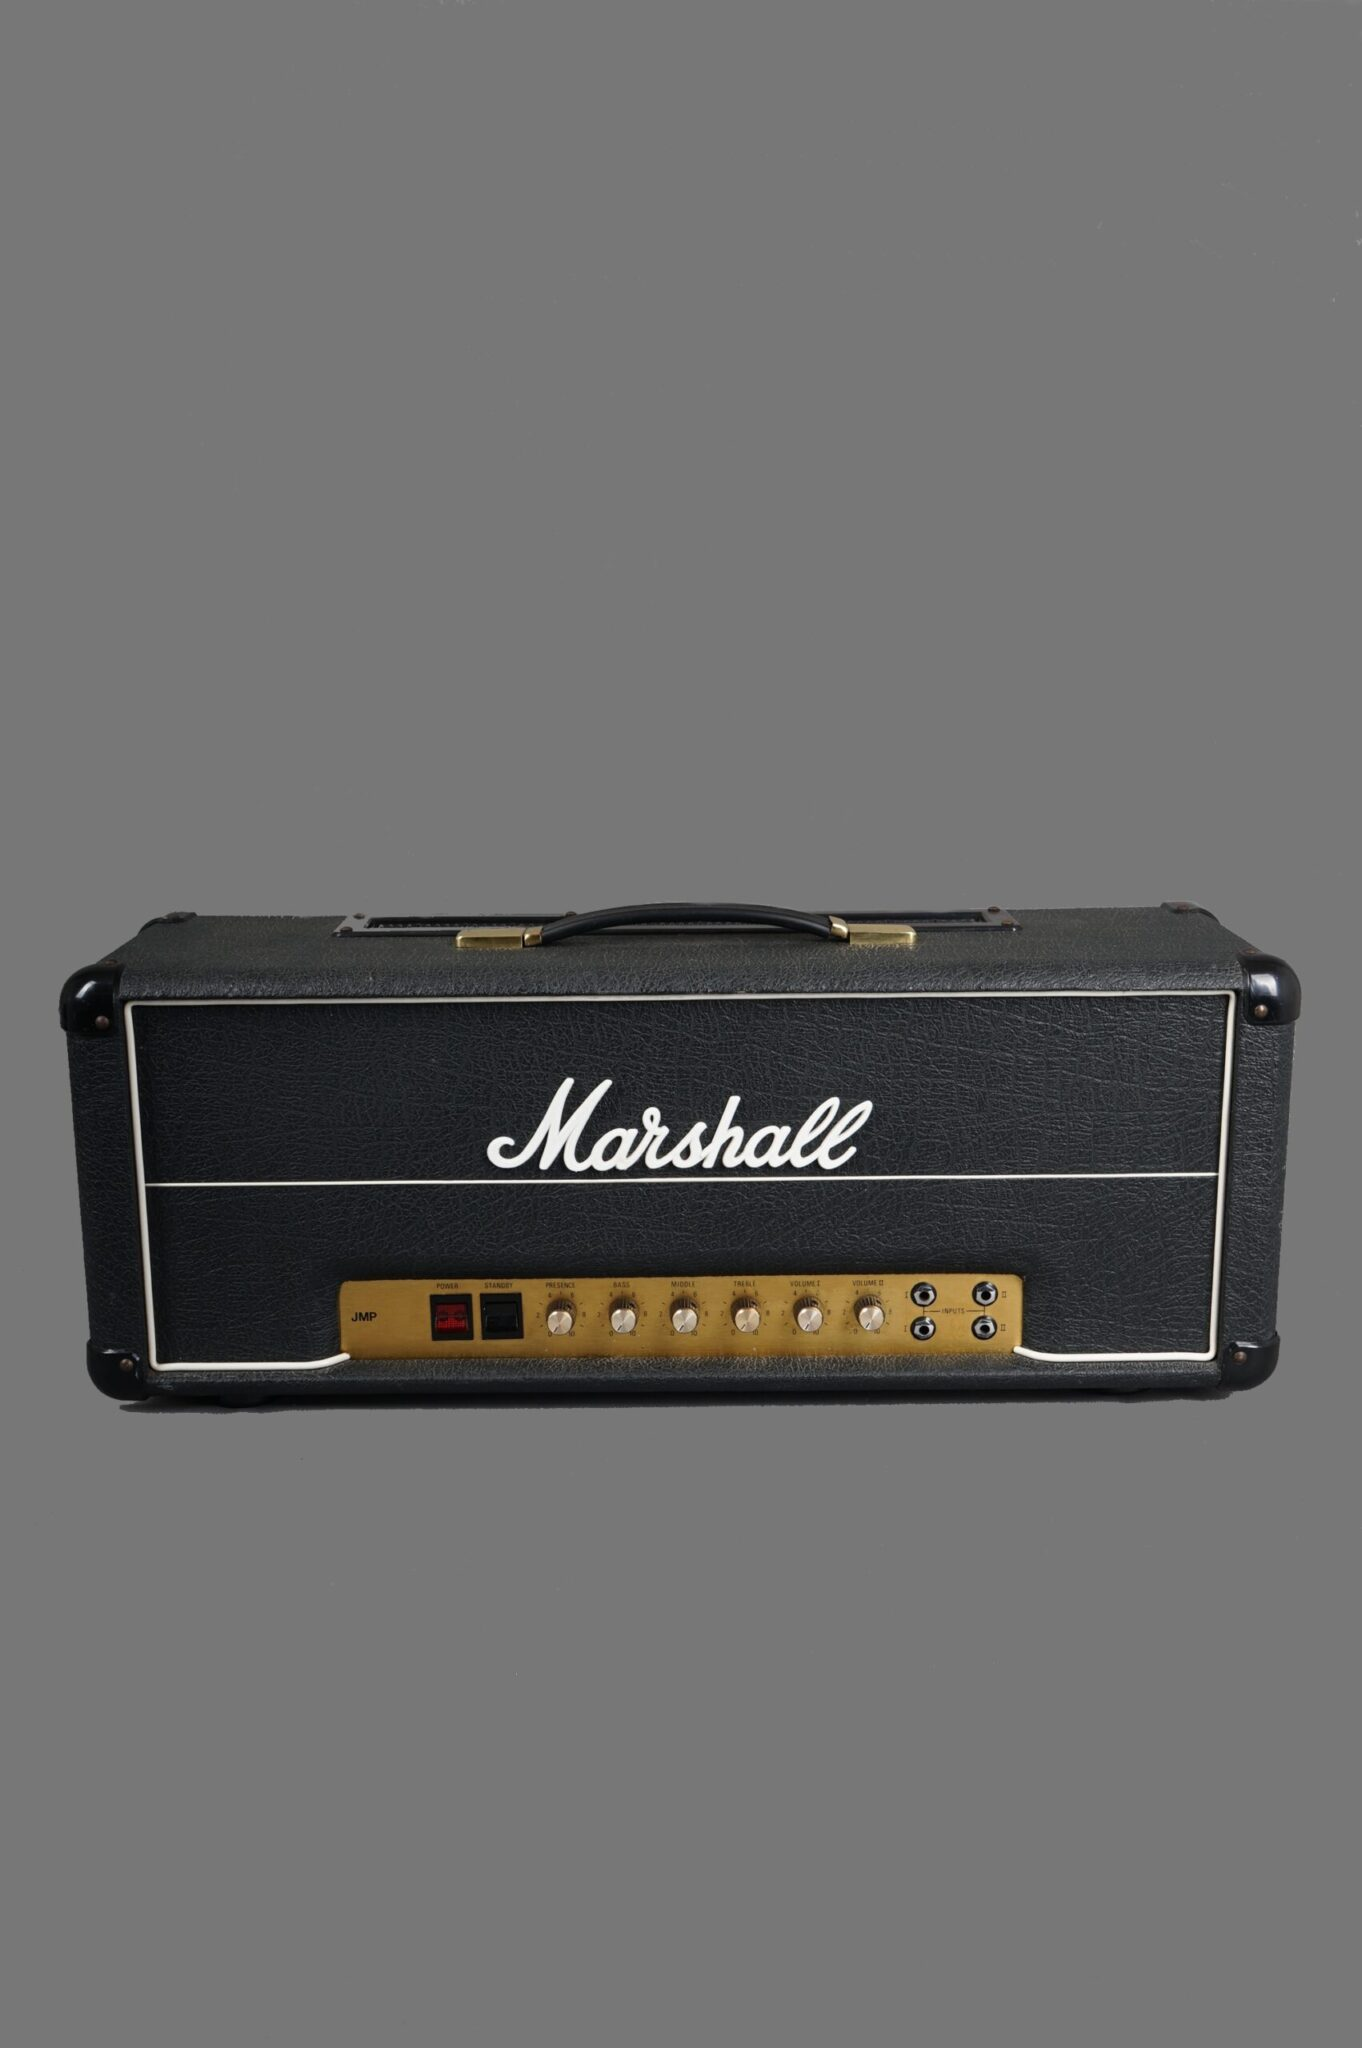 https://guitarpoint.de/app/uploads/products/1976-marshall-1959-super-lead-mkii/1976-Marshall-MK2-Super-Lead-09490J-1-scaled-1362x2048.jpg